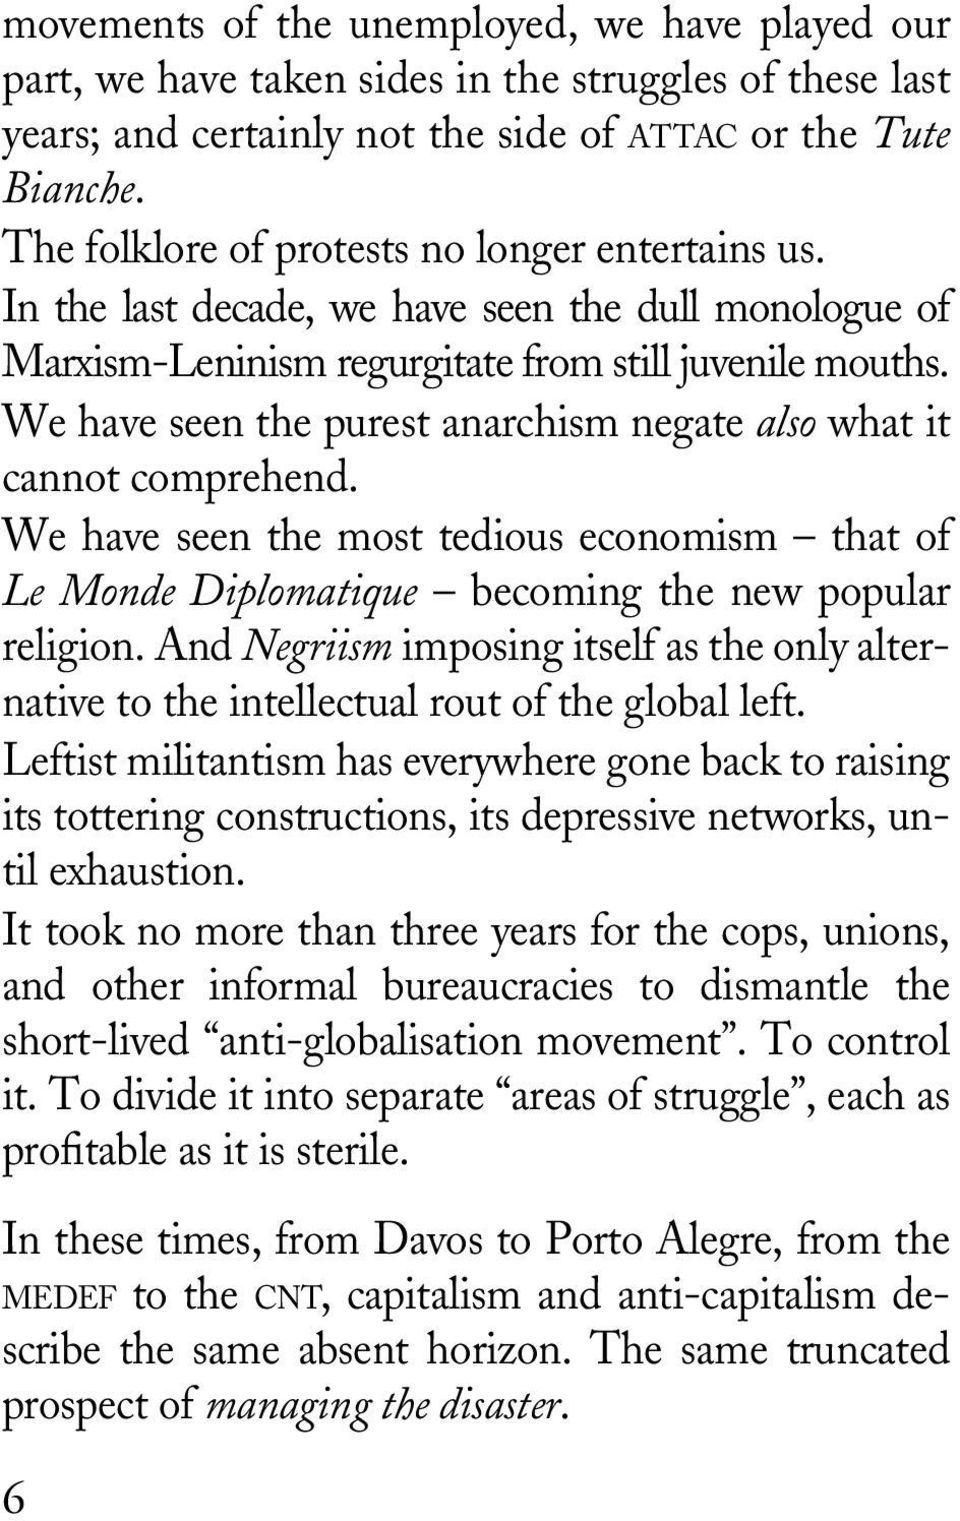 We have seen the purest anarchism negate also what it cannot comprehend. We have seen the most tedious economism that of Le Monde Diplomatique becoming the new popular religion.